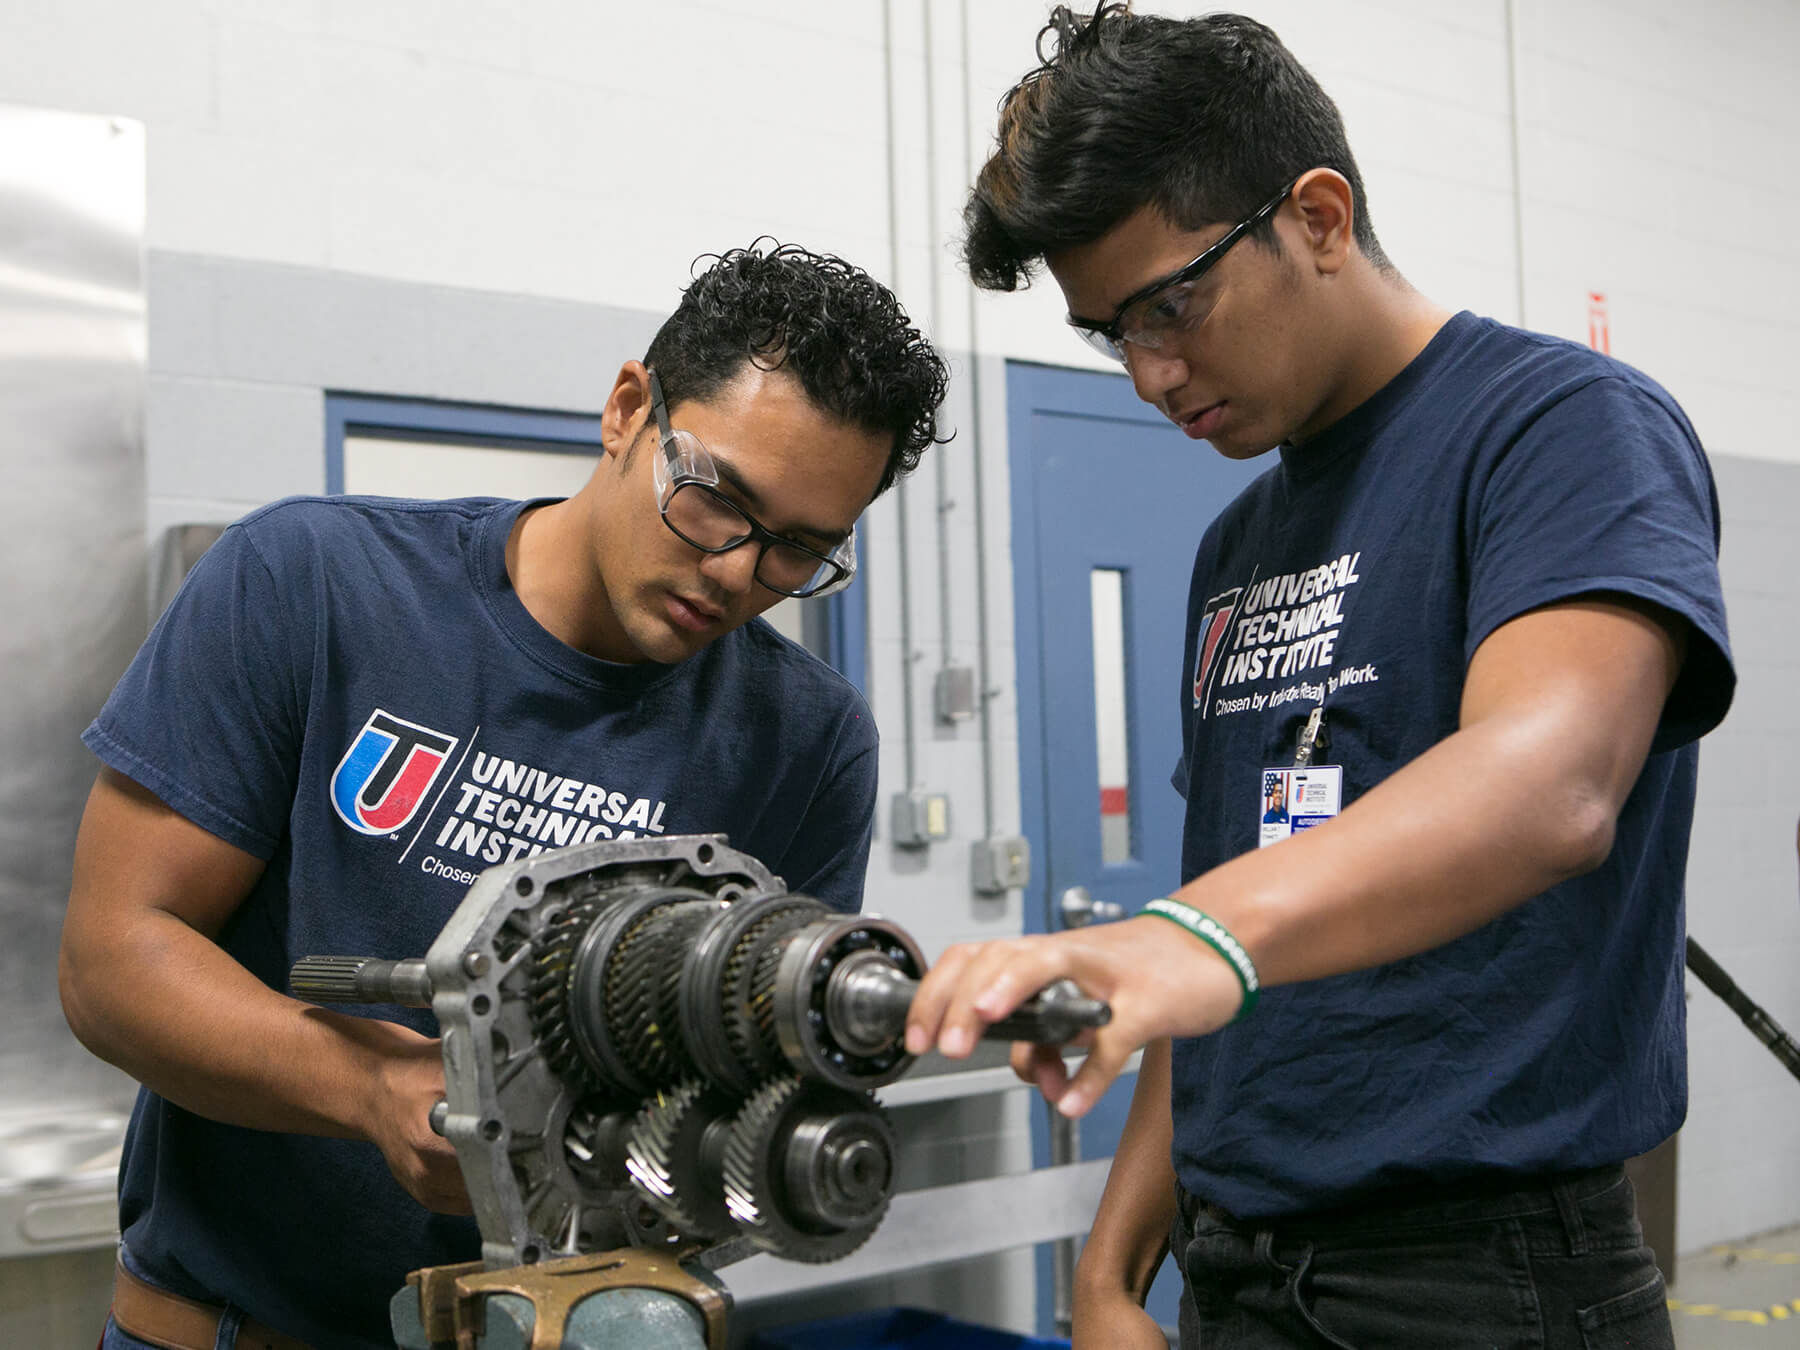 UTI students looking at an Engine Build at Avondale Campus